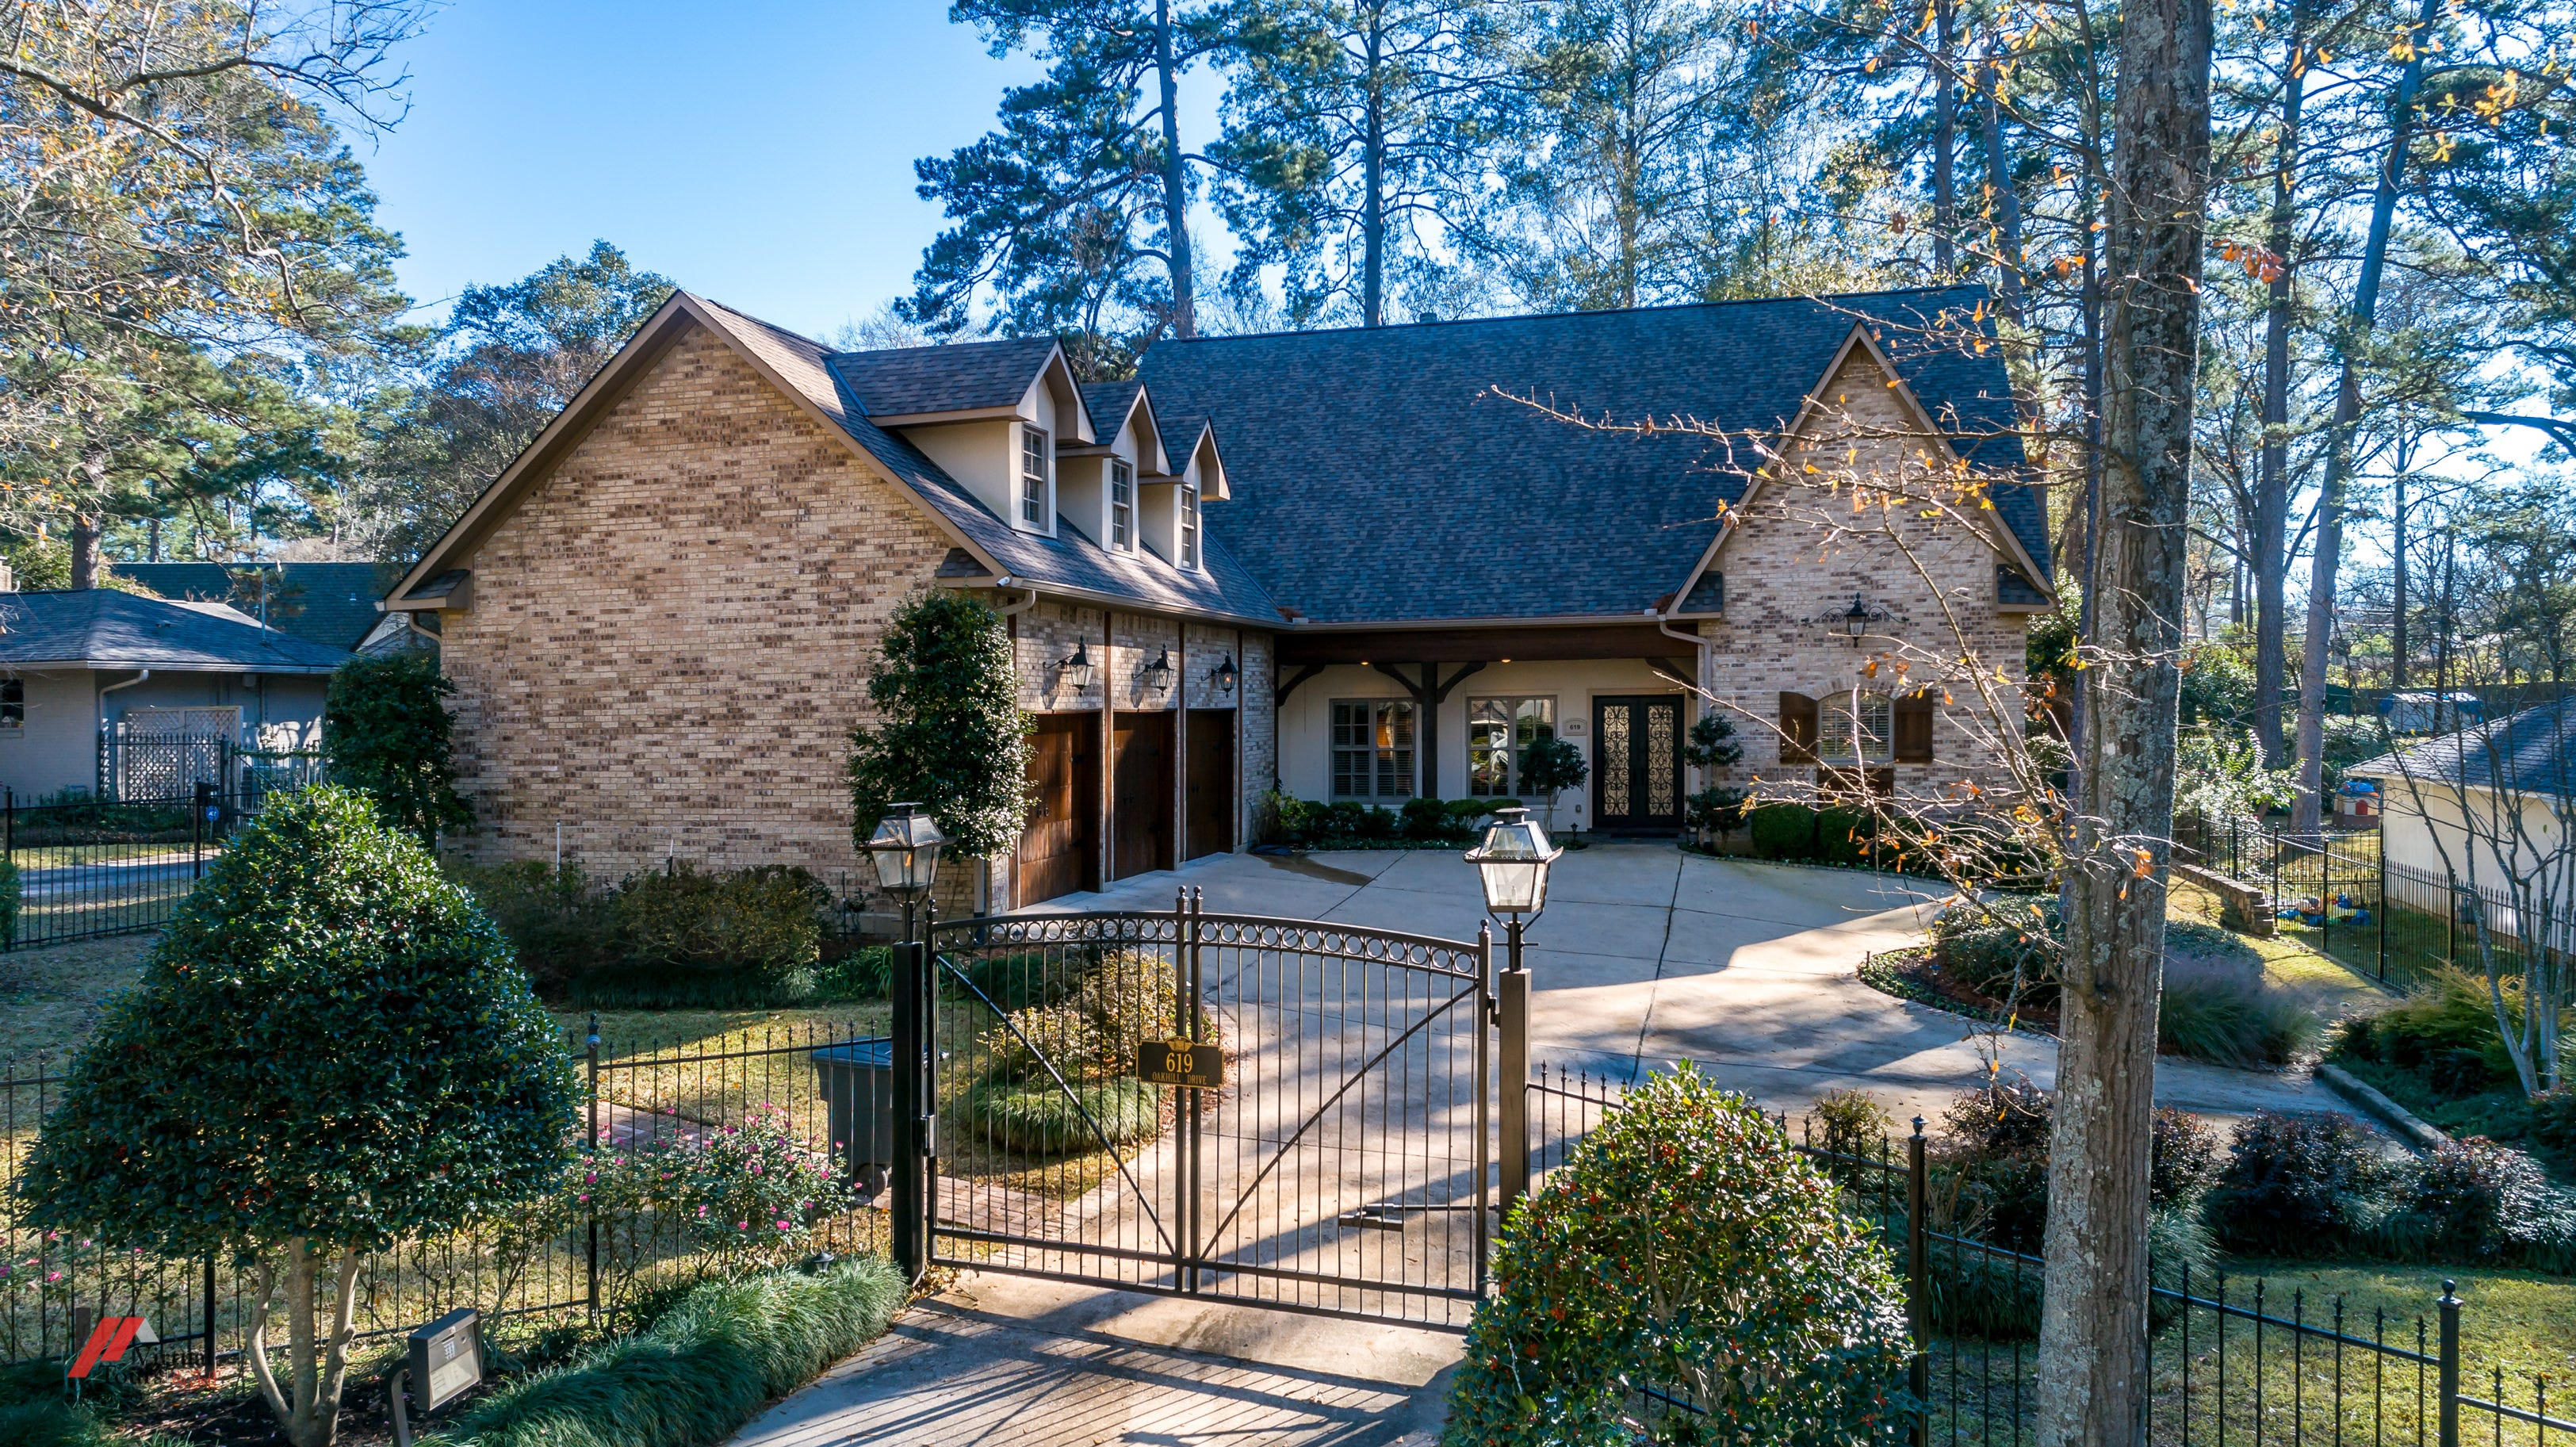 Professional landscaping and copper gas lanterns add to the charm of 619 Oak Hill Drive.